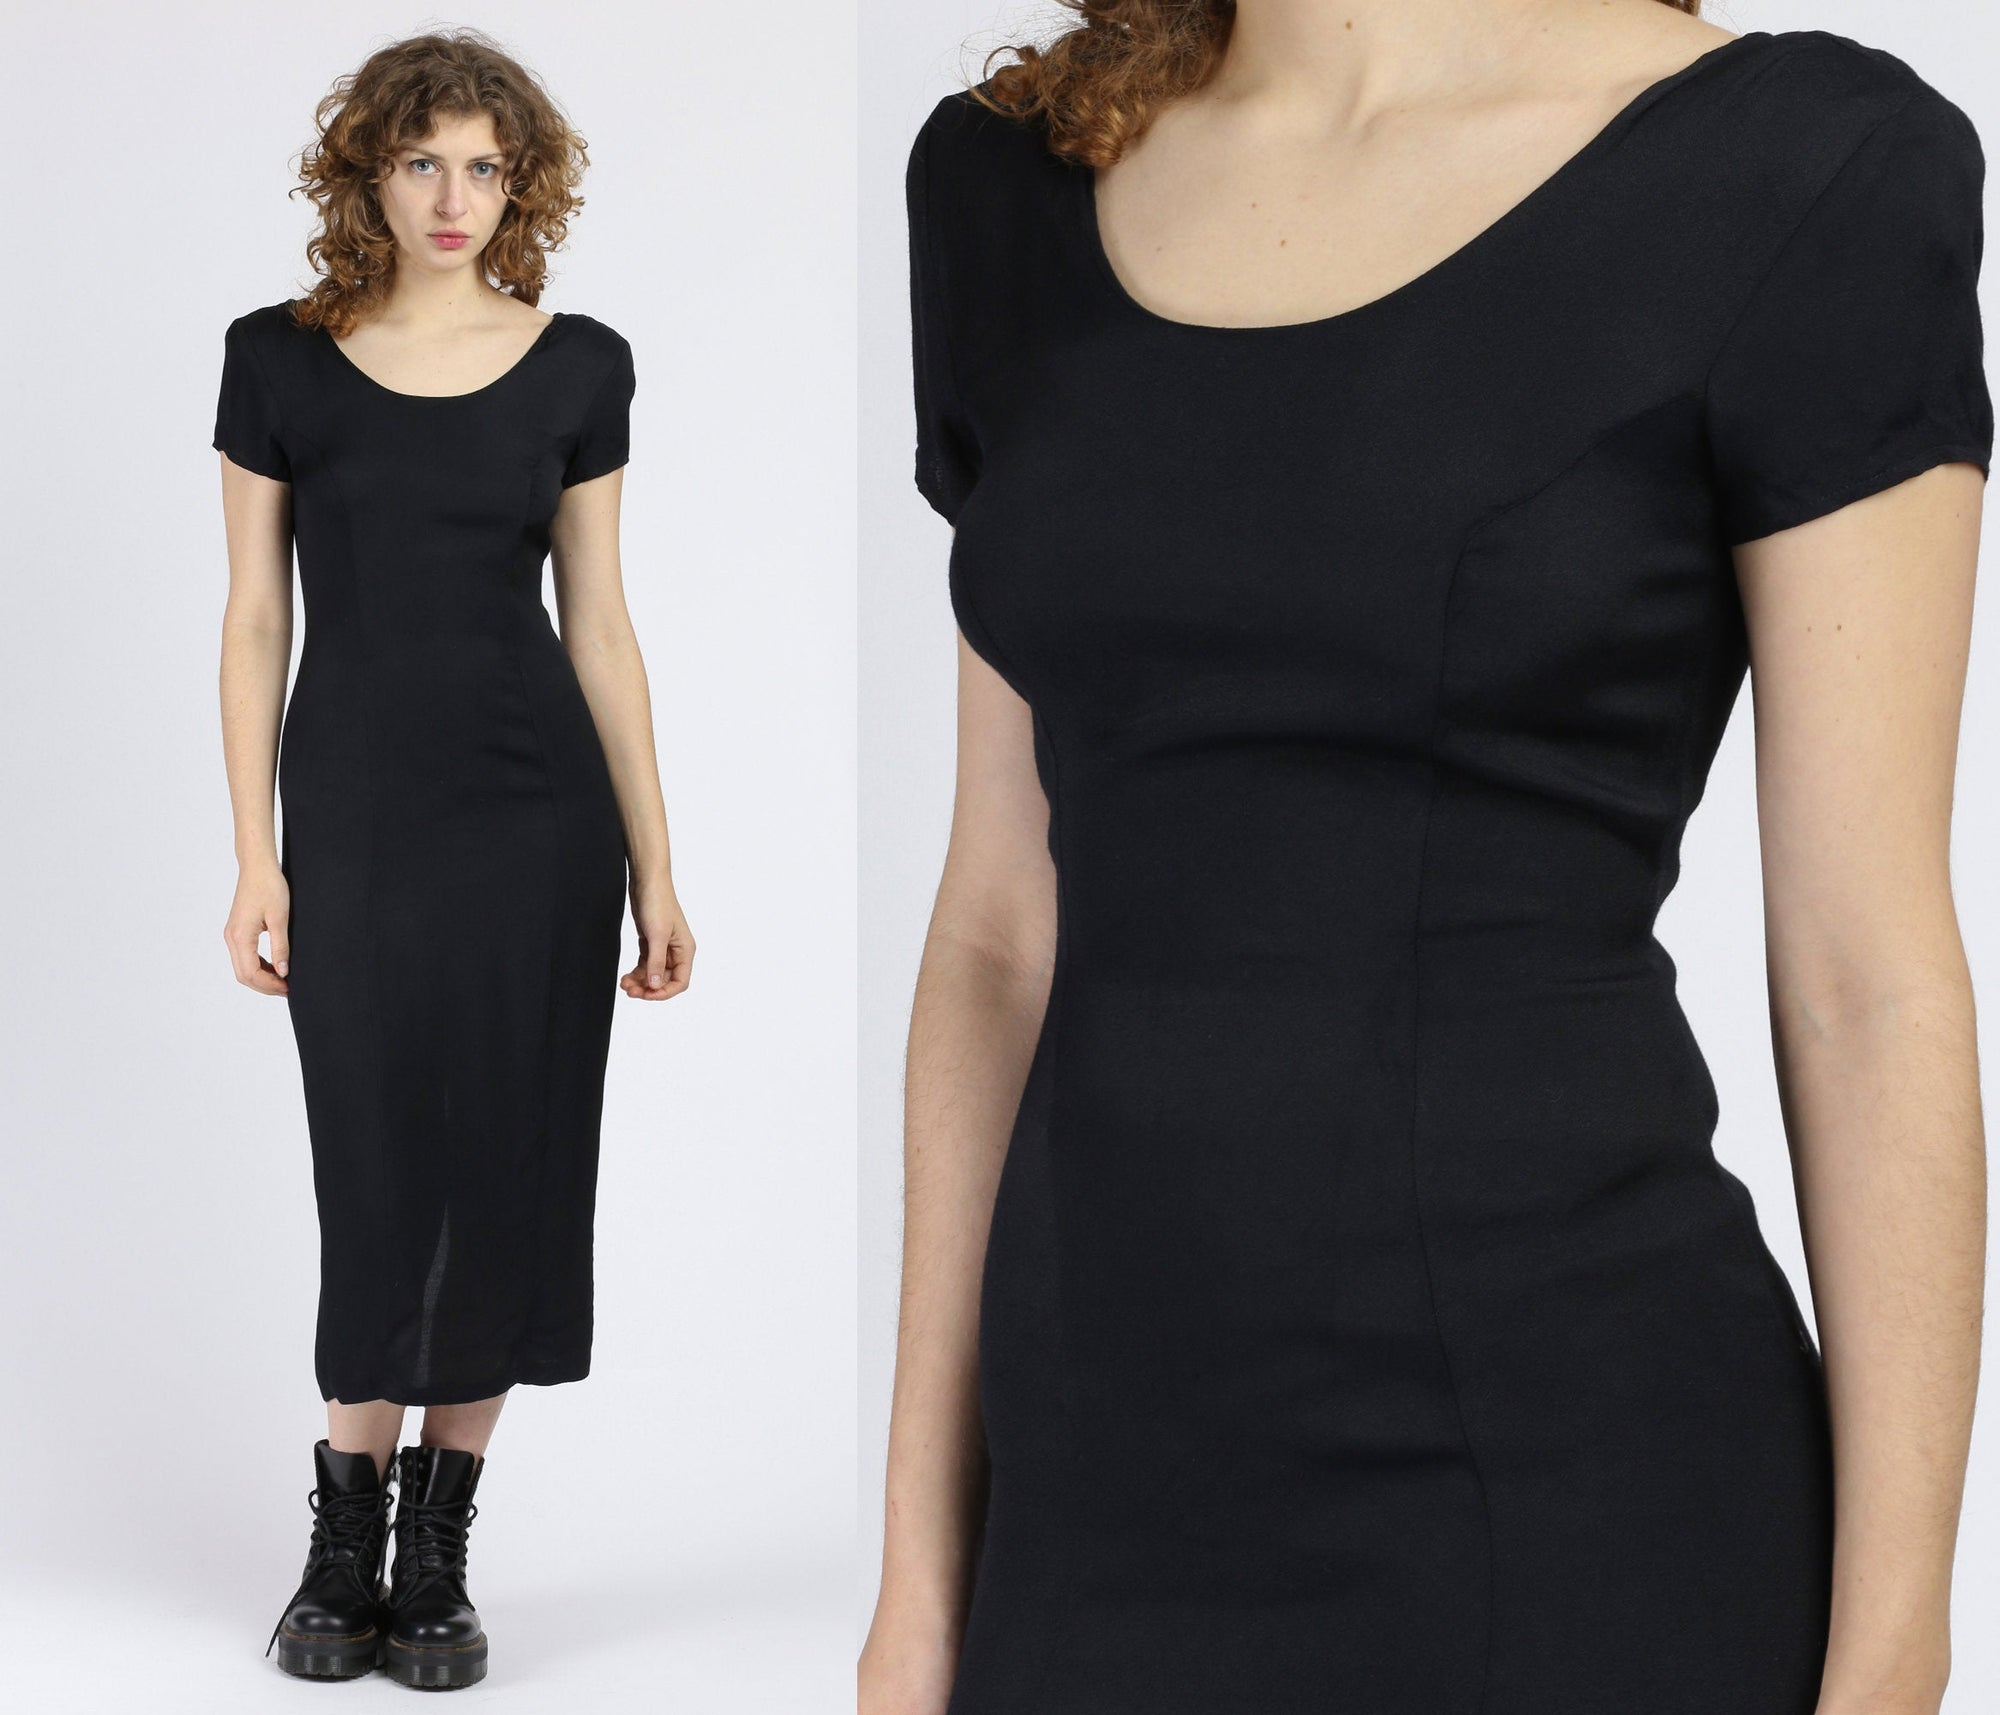 90s Minimalist Black Ankle Length Dress - Small